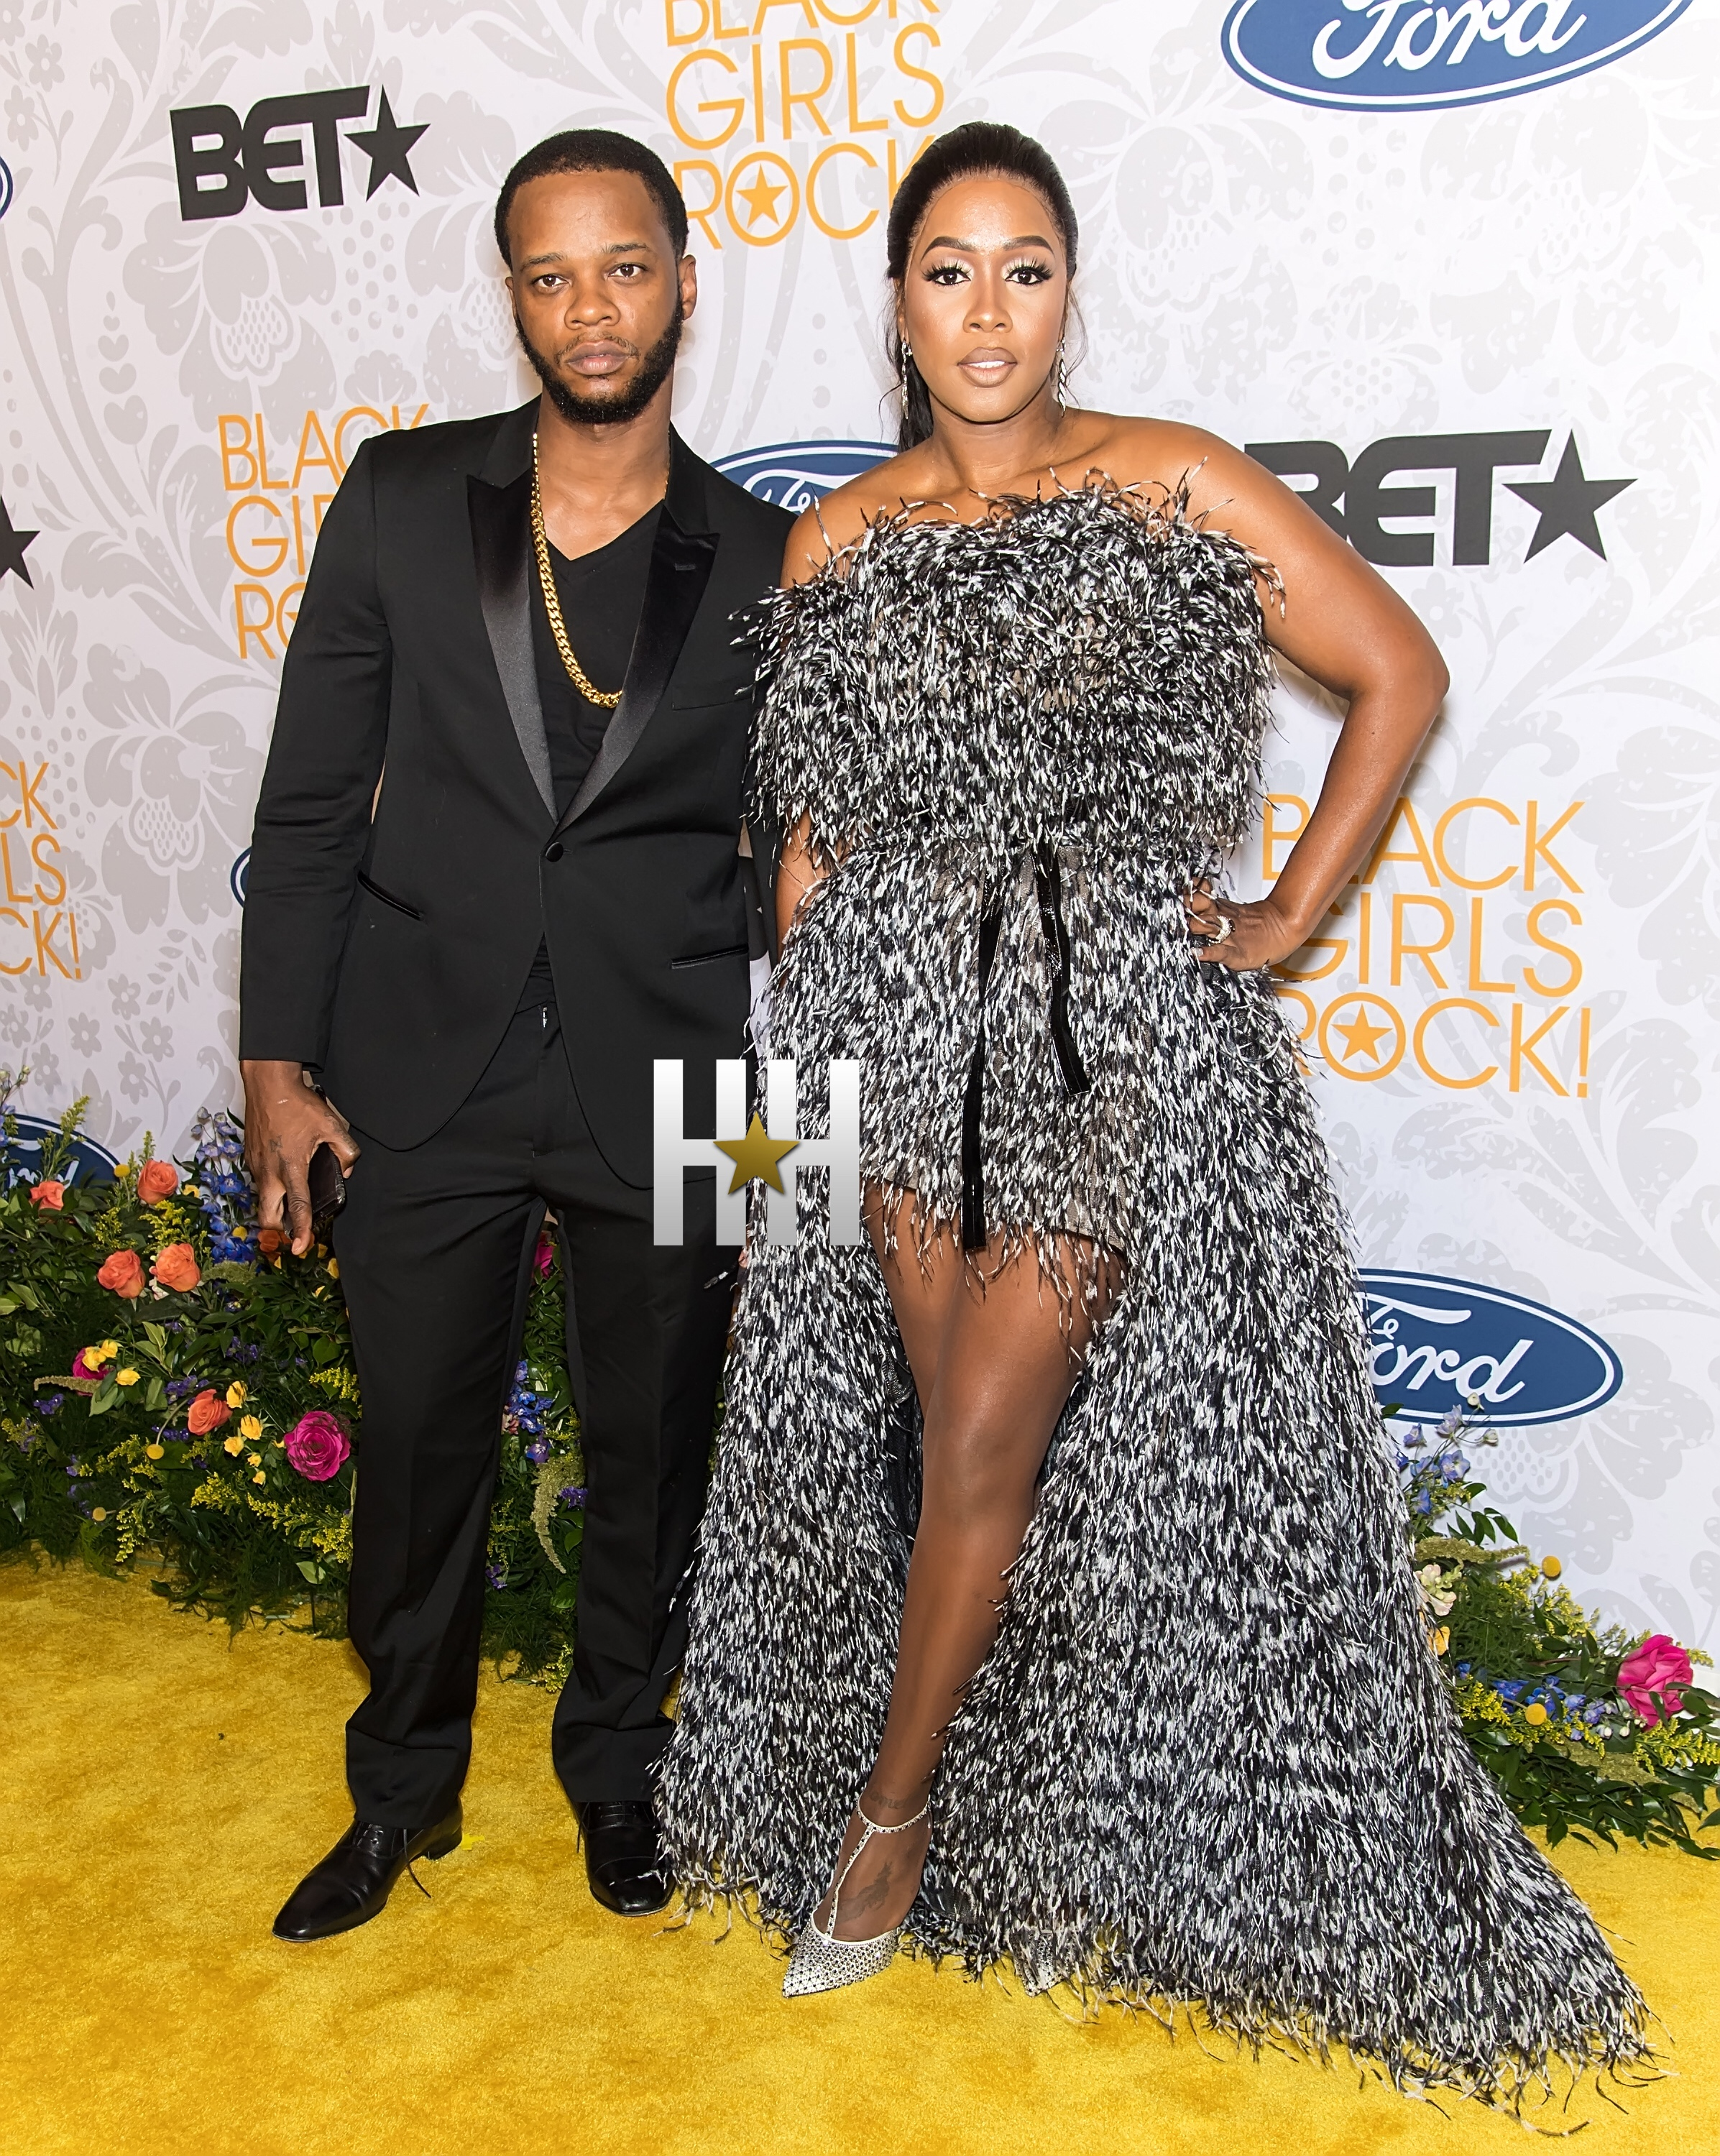 NEWARK, NJ – AUGUST 25:  Papoose and Remy Ma attend 2019 Black Girls Rock! at NJ Performing Arts Center on August 25, 2019 in Newark, New Jersey.  (Photo by Gilbert Carrasquillo/Getty Images)